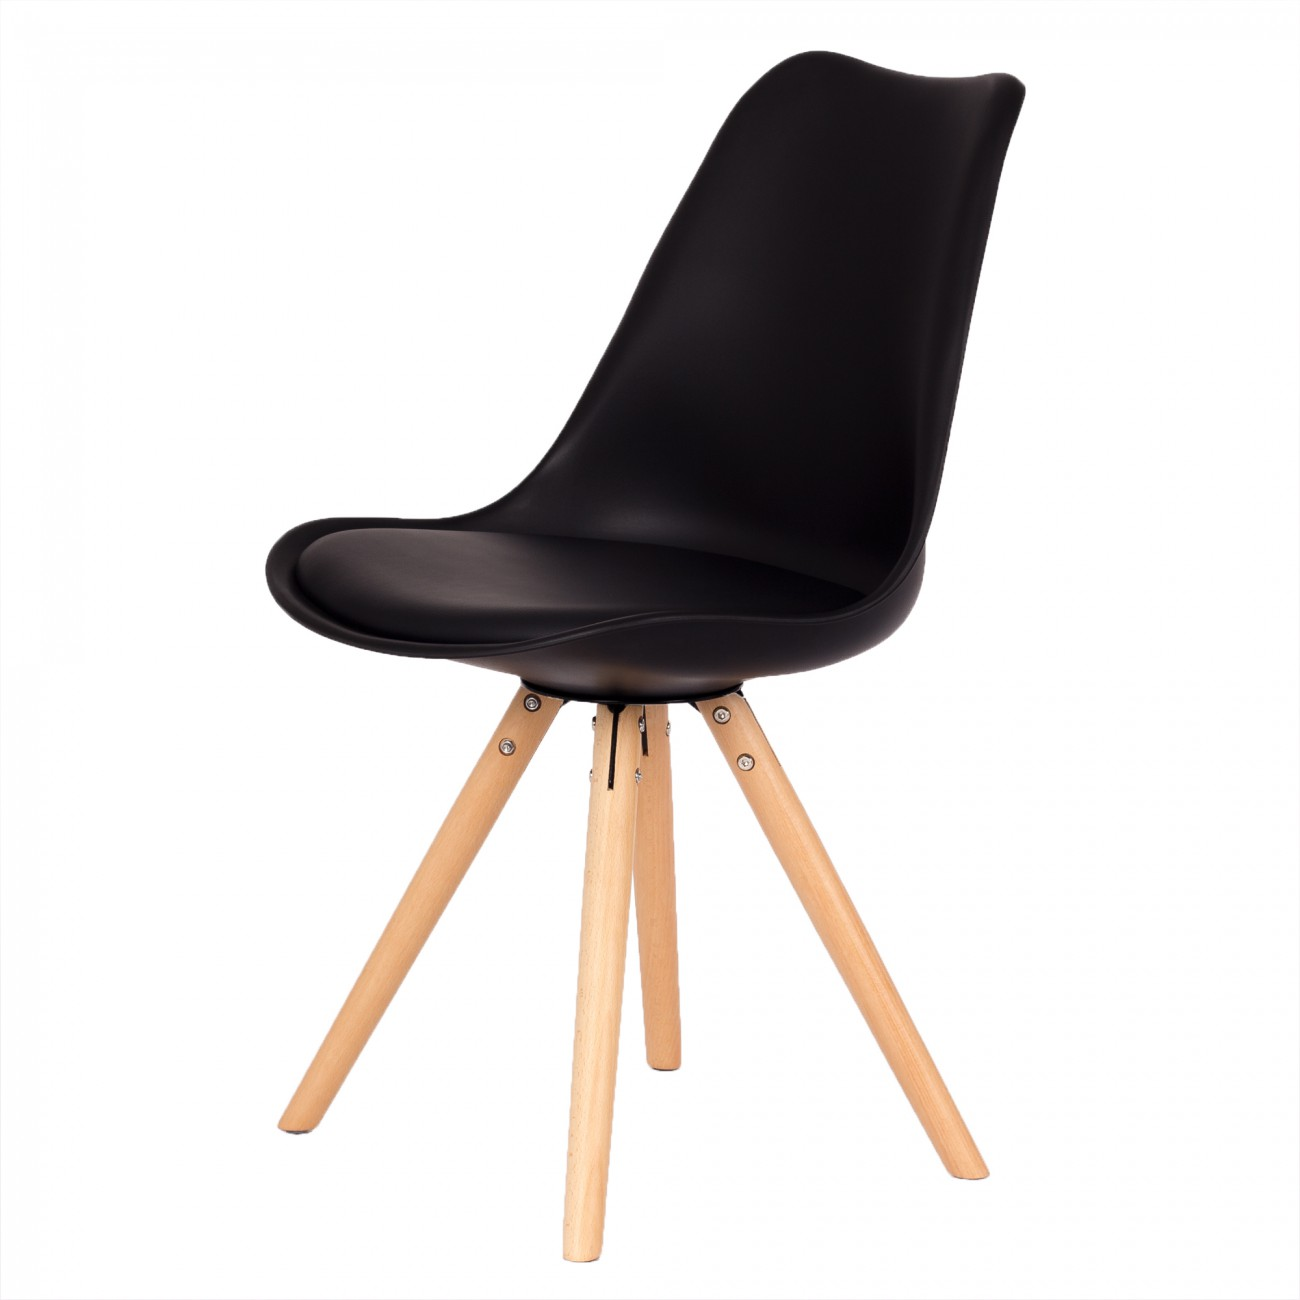 My sit design retro dining chair set of 4 mool in black for Design stuhl leisure